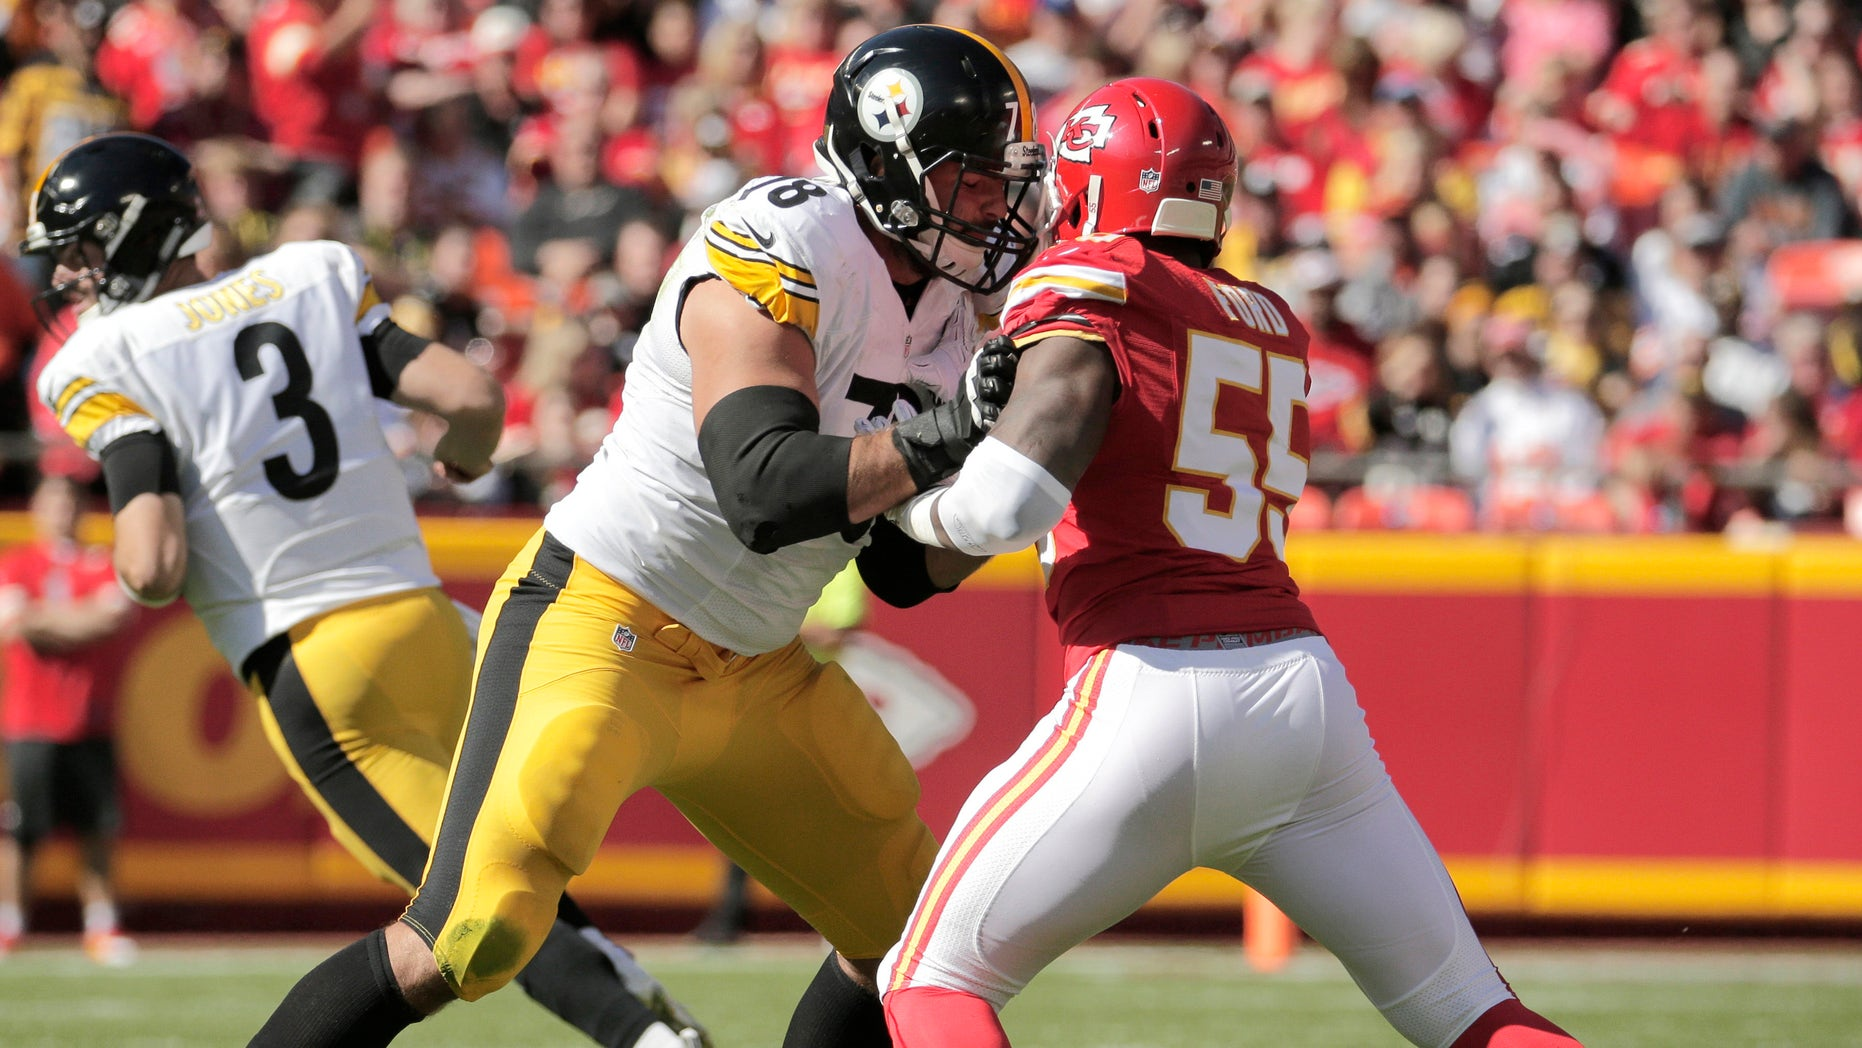 Pittsburgh Steelers offensive tackle Alejandro Villanueva (78) blocks Kansas City Chiefs linebacker Dee Ford (55) during the first half of an NFL football game in Kansas City, Mo., Sunday, Oct. 25, 2015. (AP Photo/Charlie Riedel)